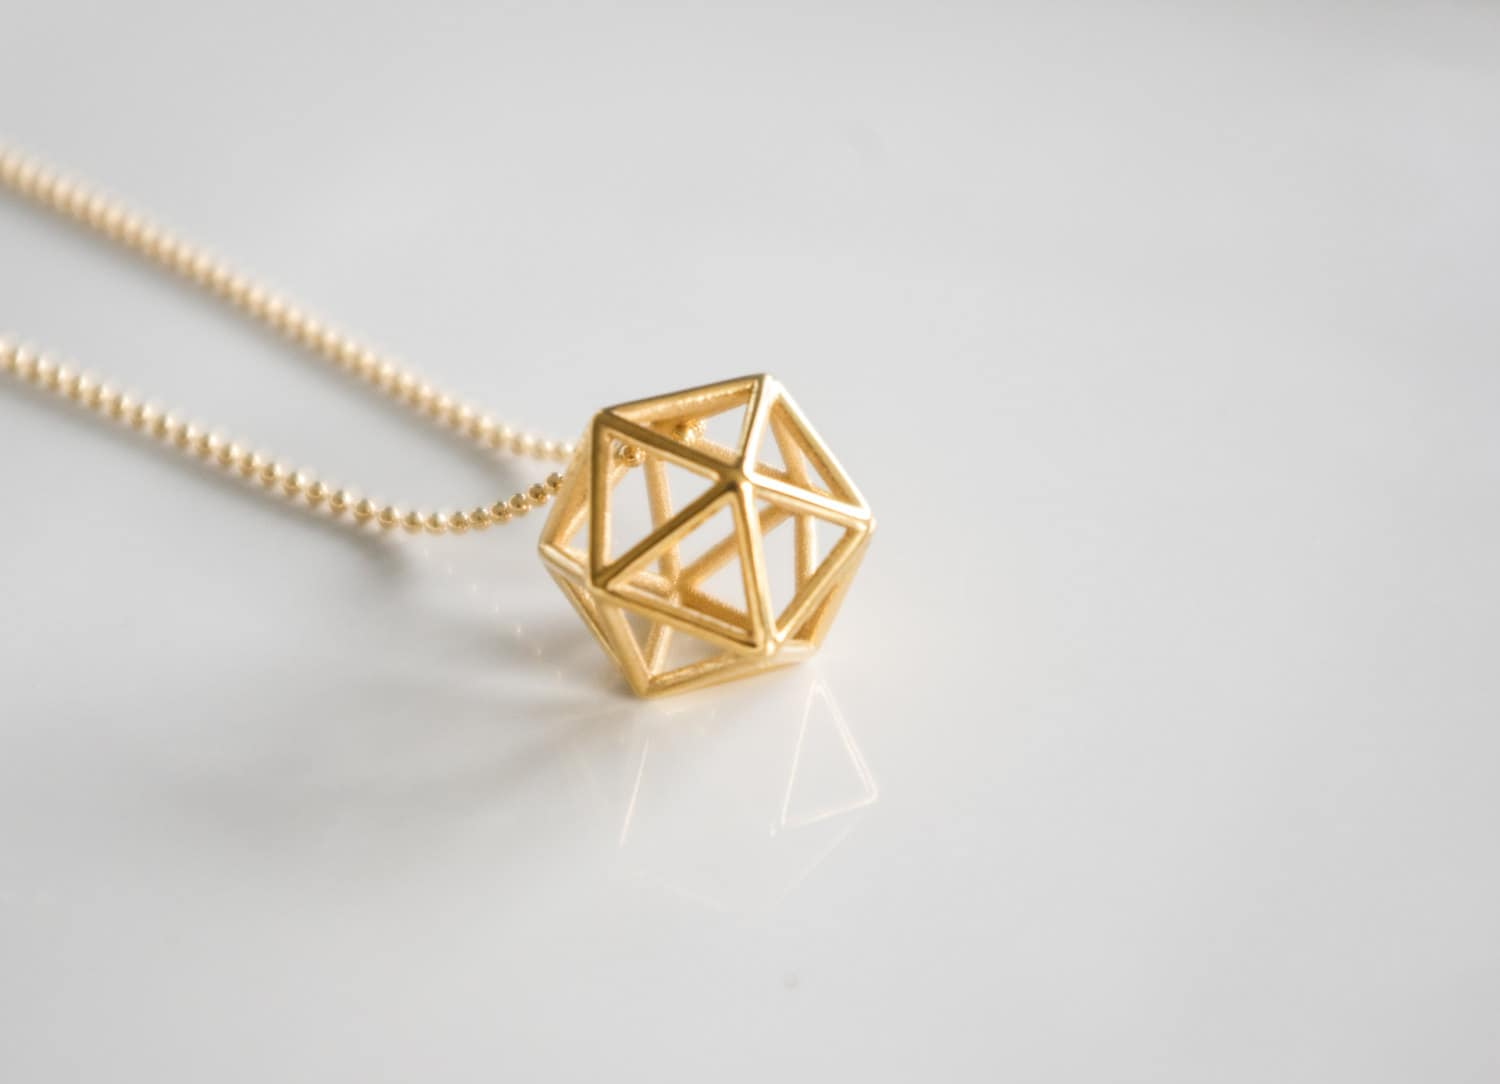 single sm jewellery collections small little geo gold pend pendant products rebecca geometric